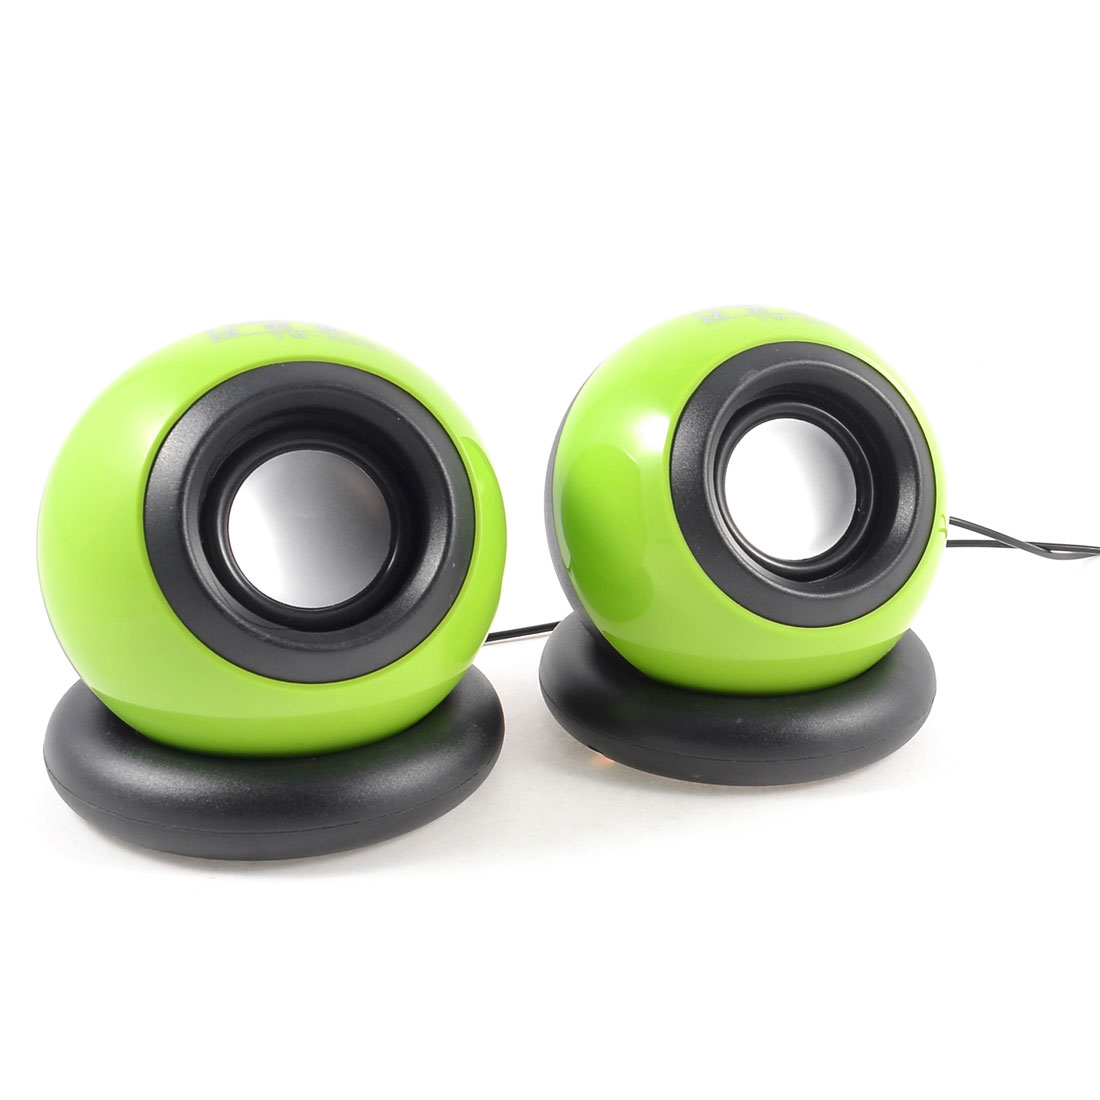 2 Pcs Green Black Computer USB 2.0 3.5mm Ball Shape Mini Sound Box Speaker